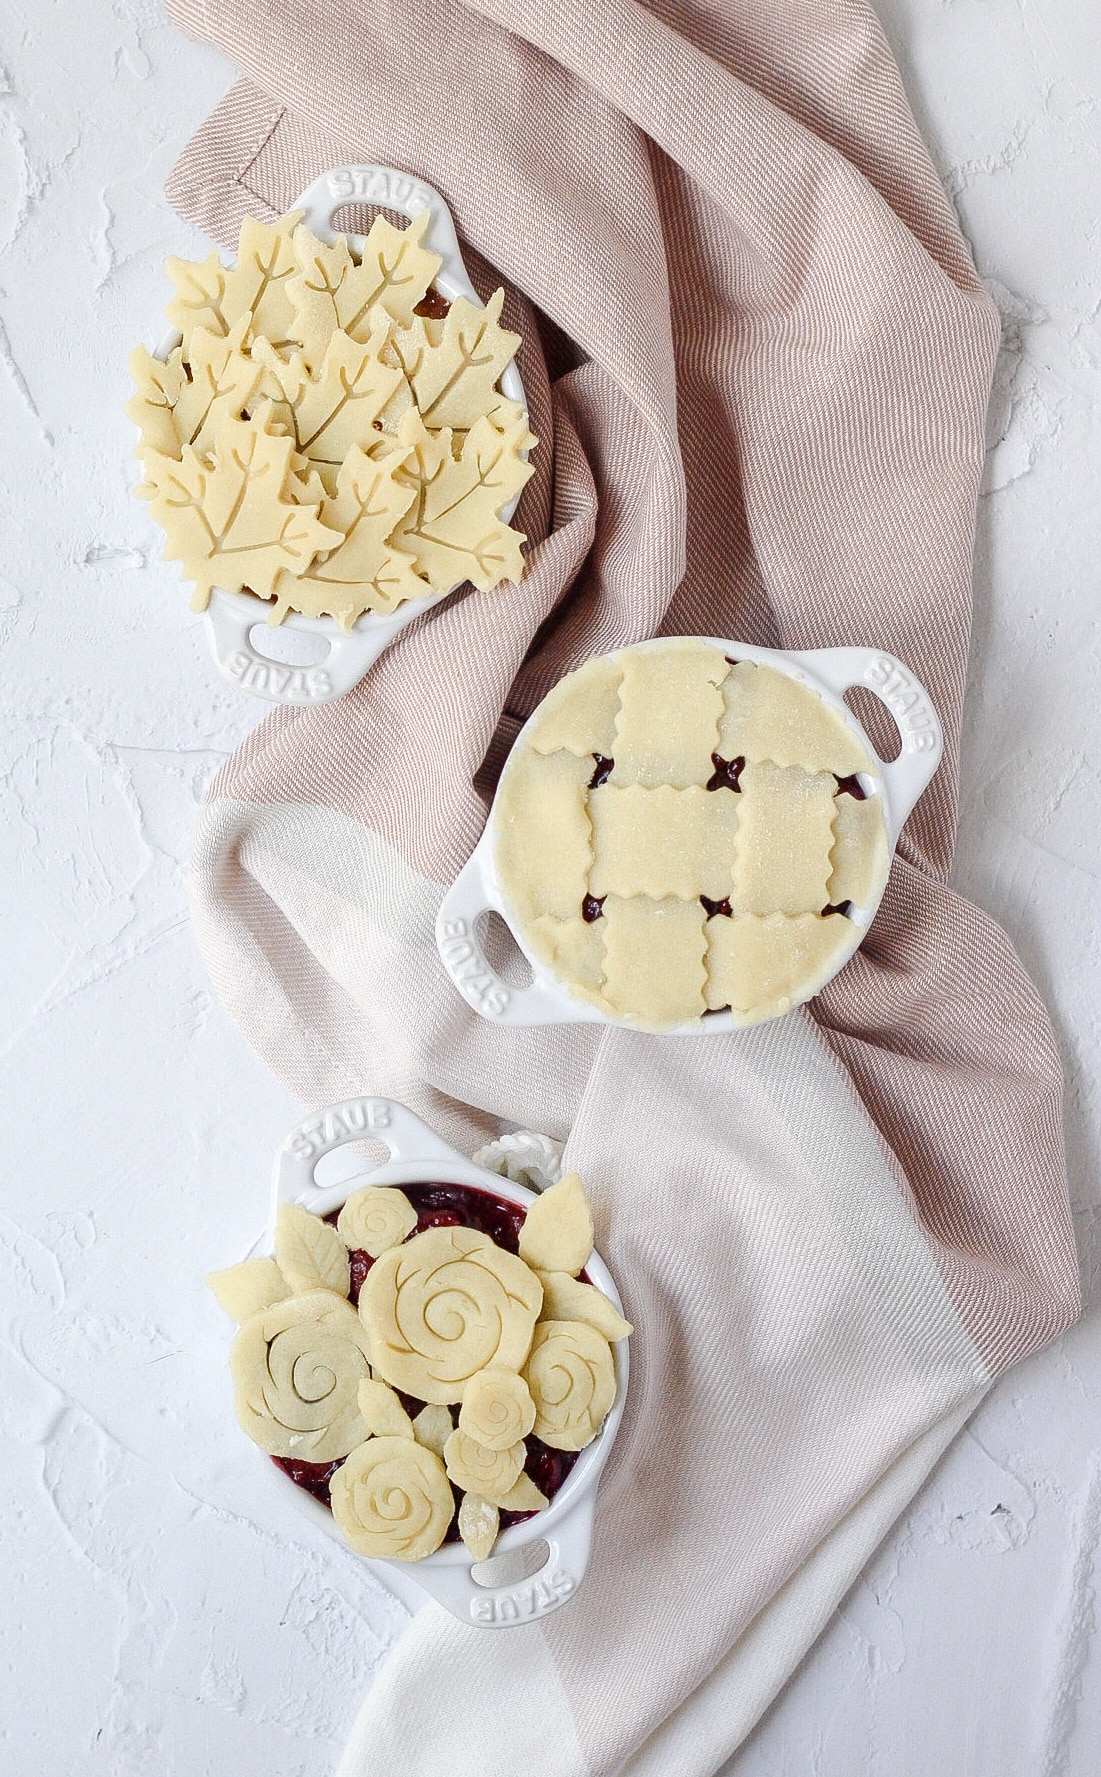 three mini pies in staub cocottes with different crust designs